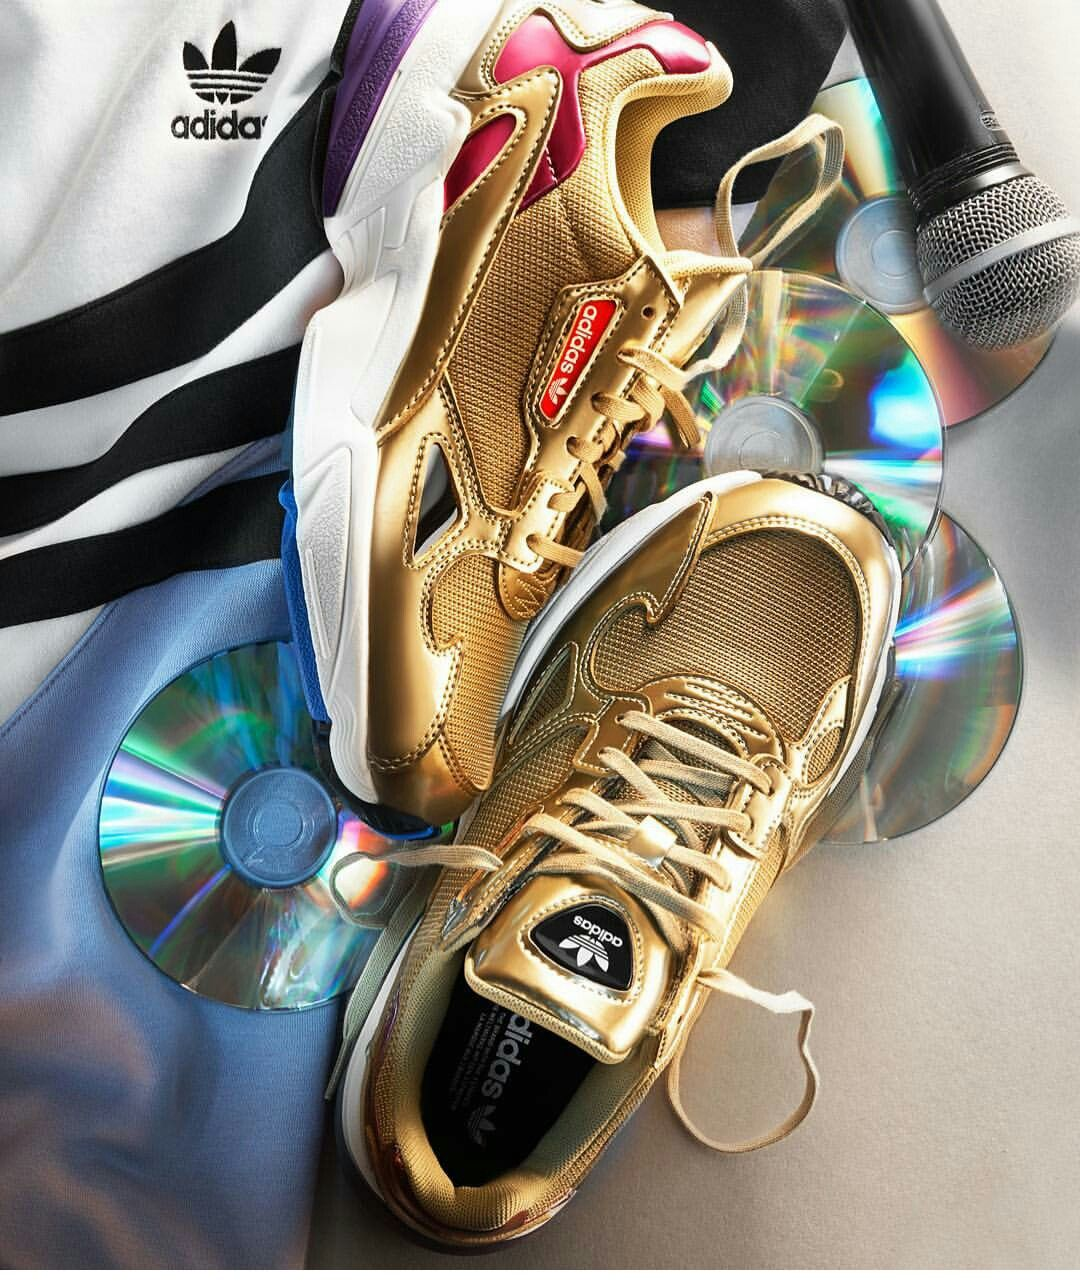 Adidas Falcon | Gold adidas, Shoes, Sneakers fashion